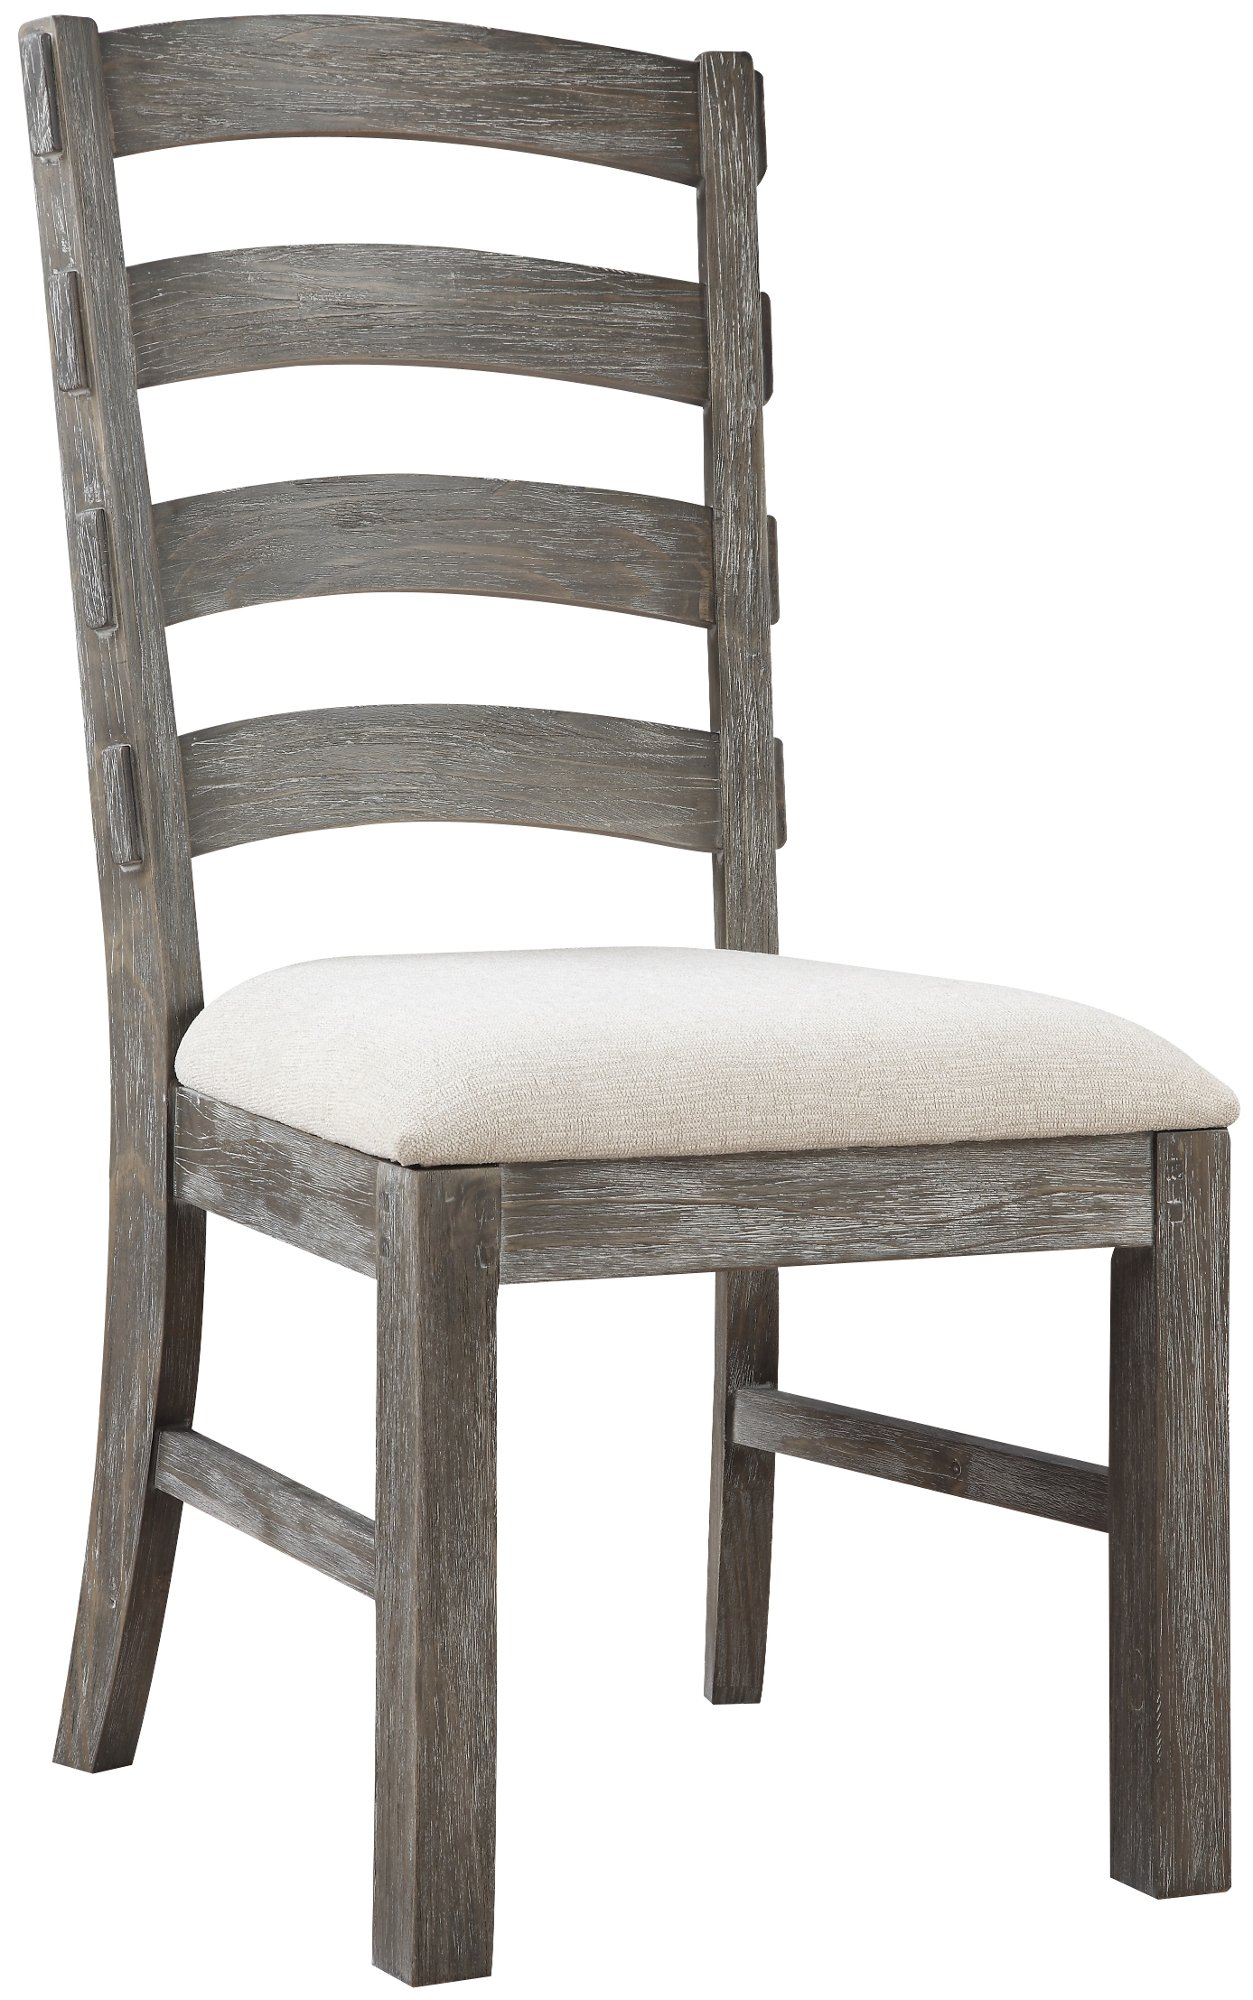 Charcoal Upholstered Dining Chair   Paladin Collection